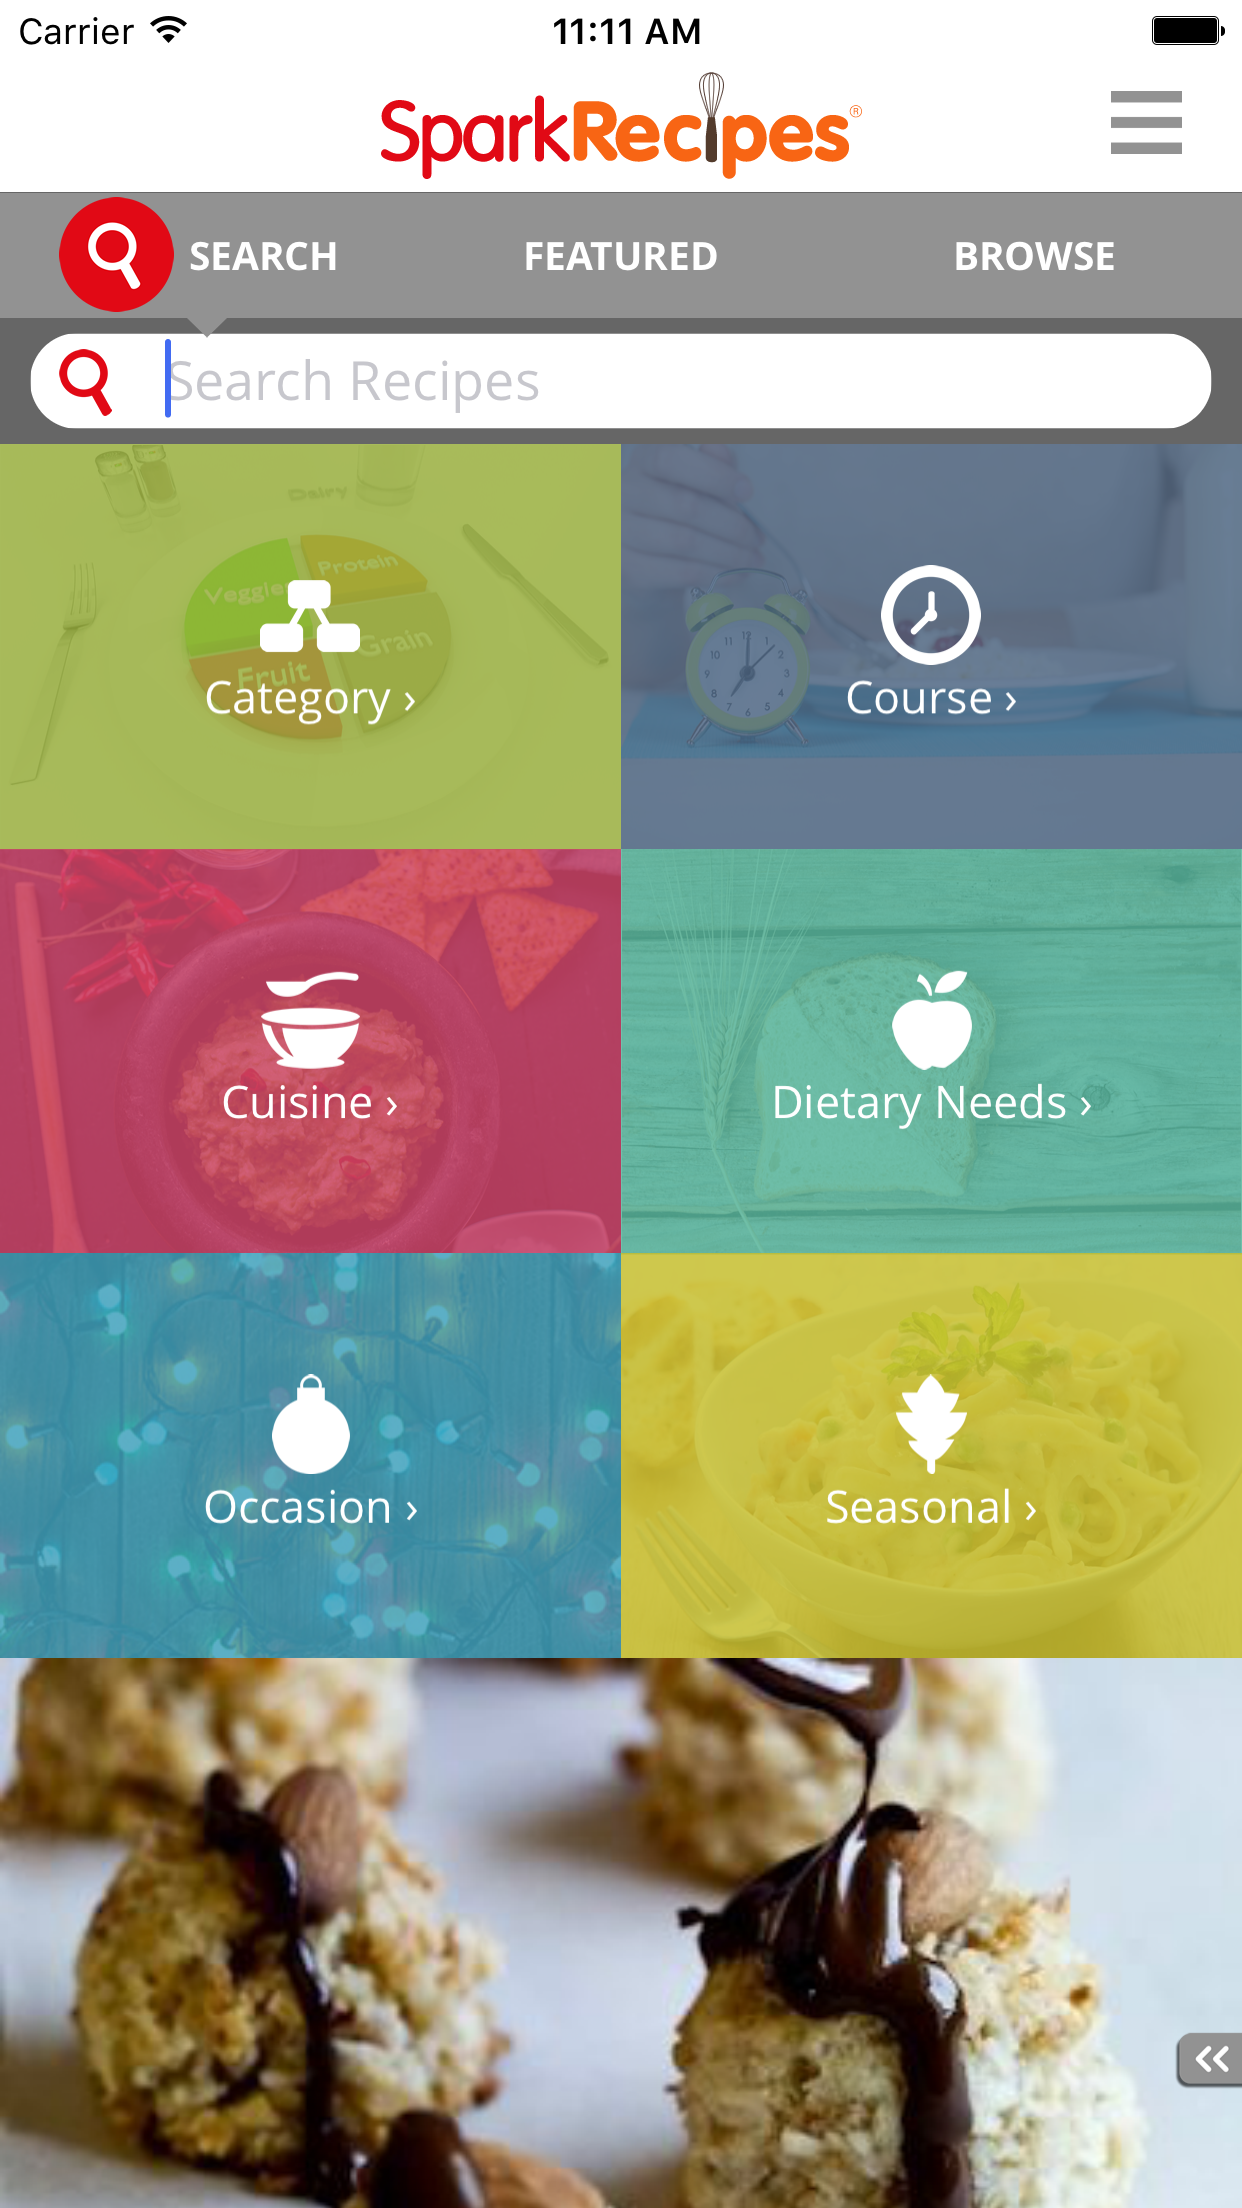 Healthy Recipes - SparkRecipes Screenshot